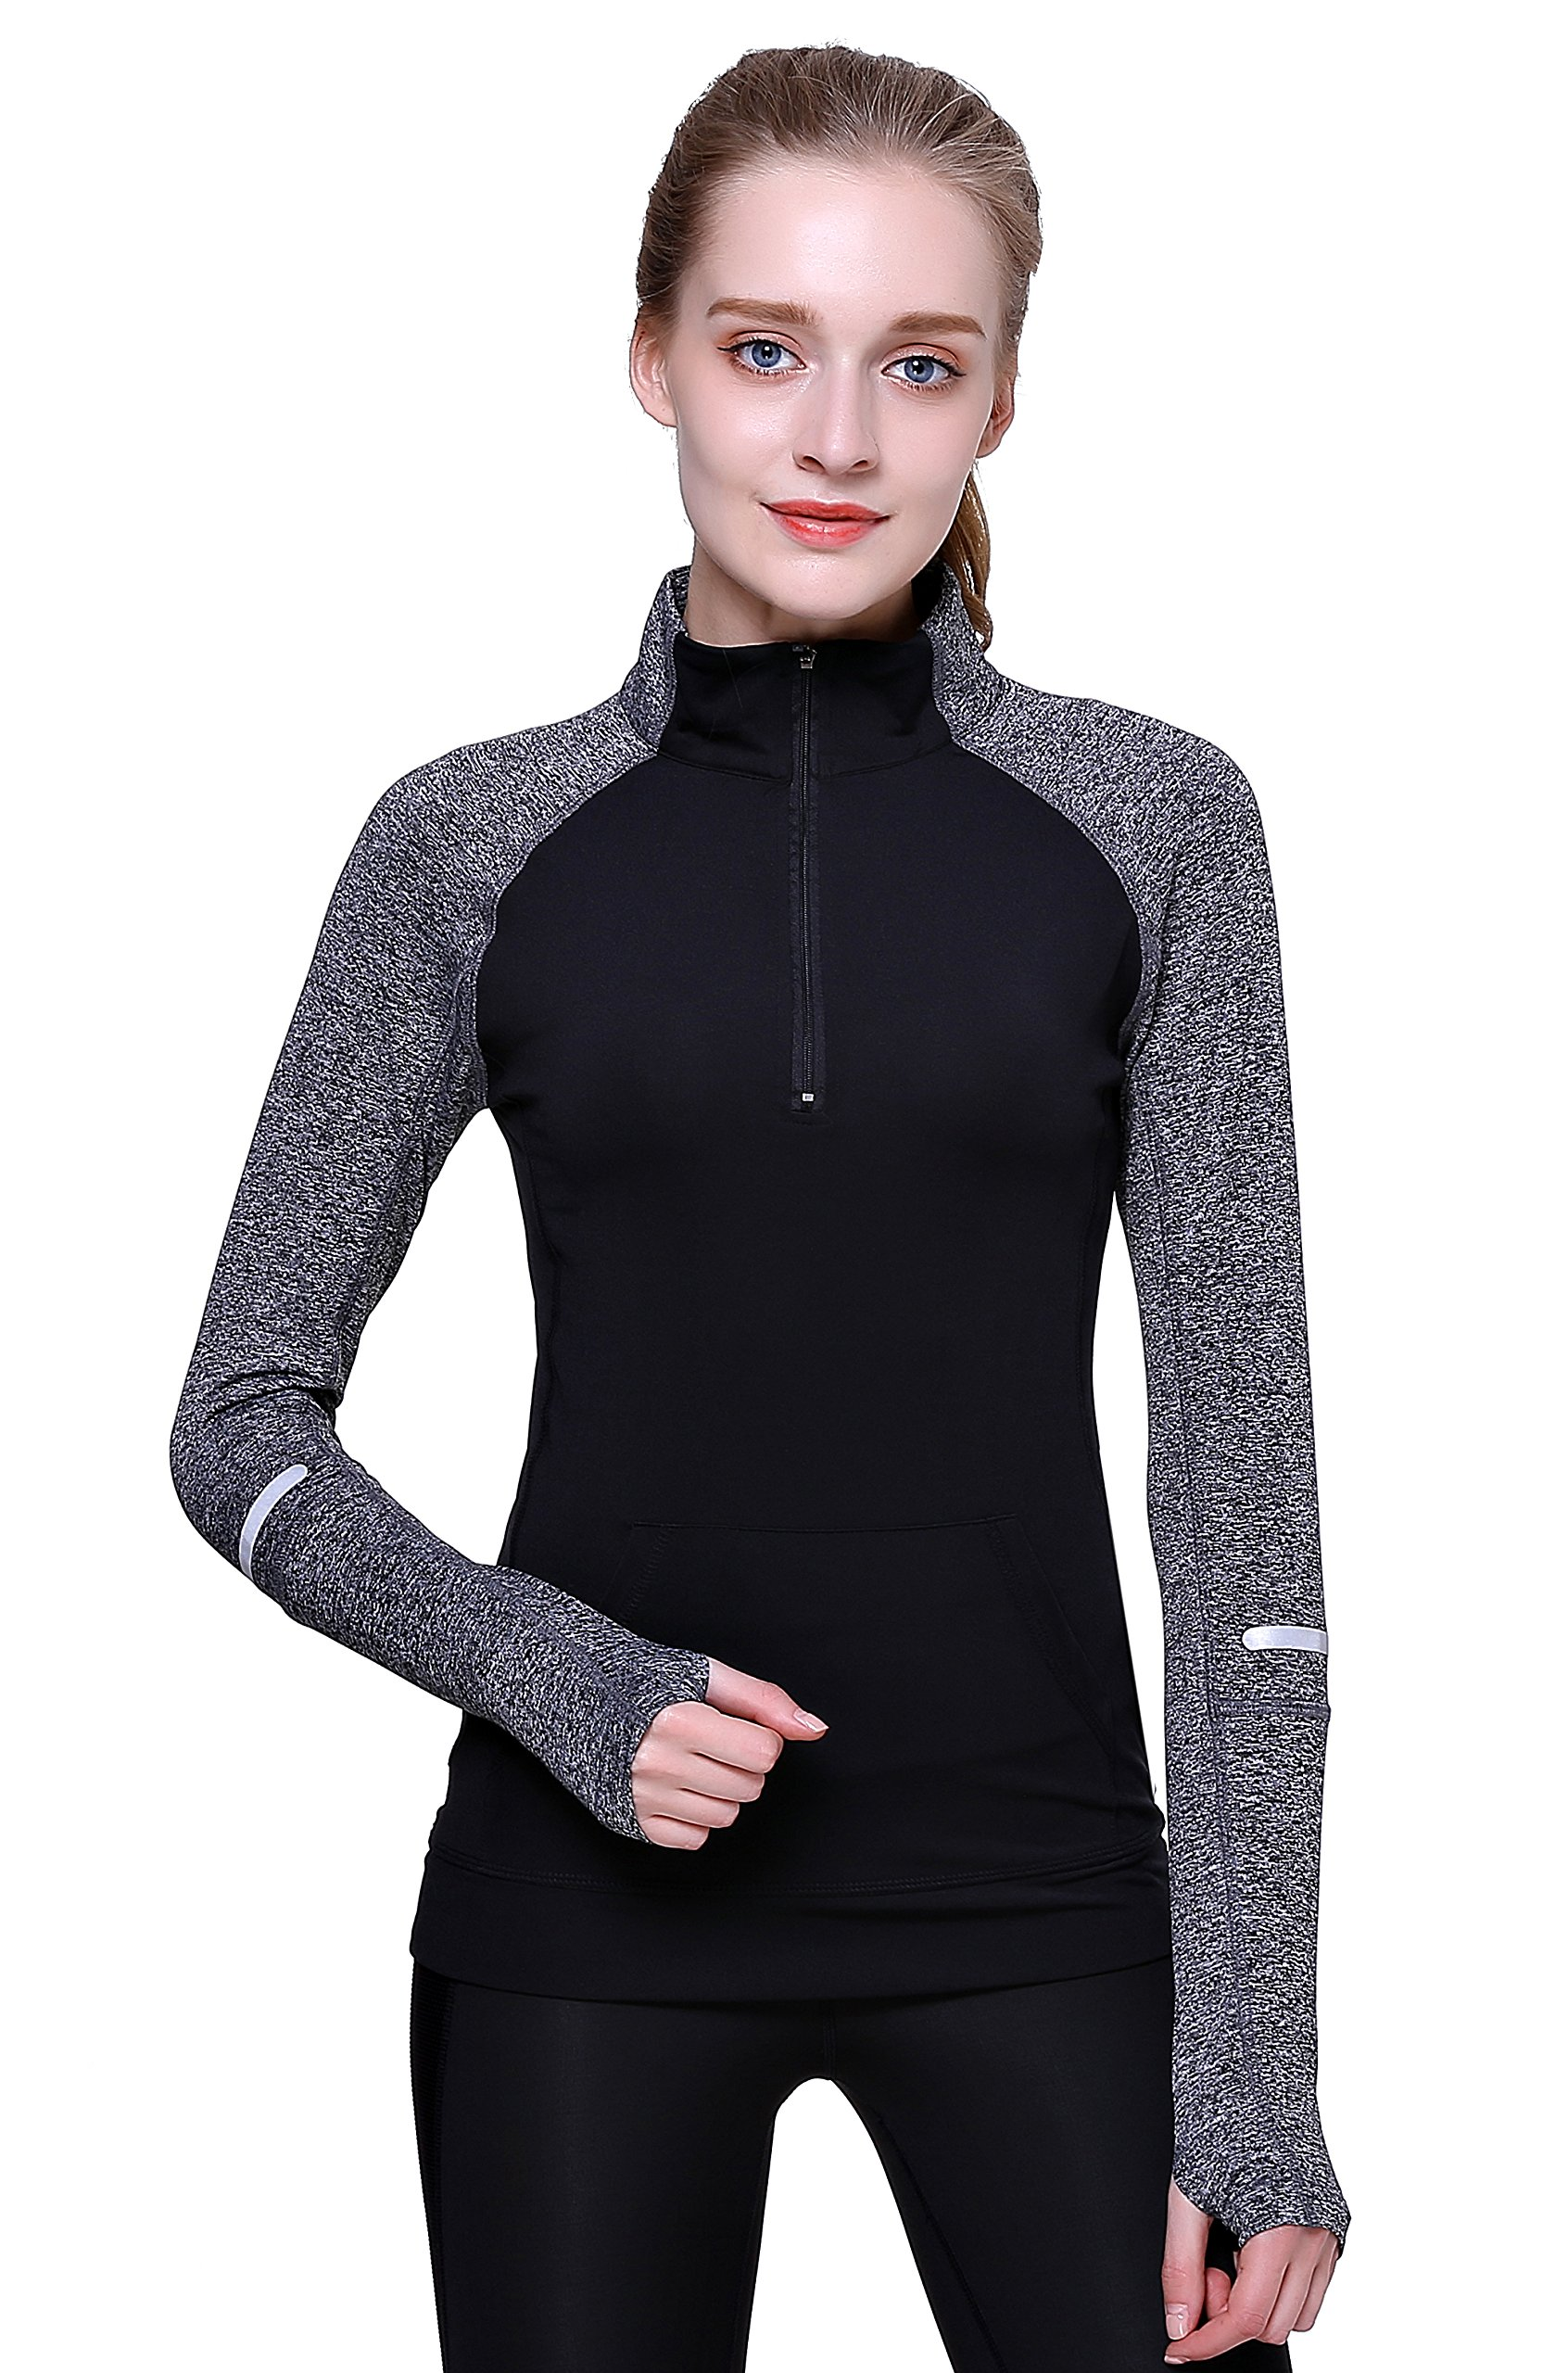 Women Yoga Long Sleeves Half Zip Sweatshirt Girl Athletic Workout Running Jacket (L, Black)